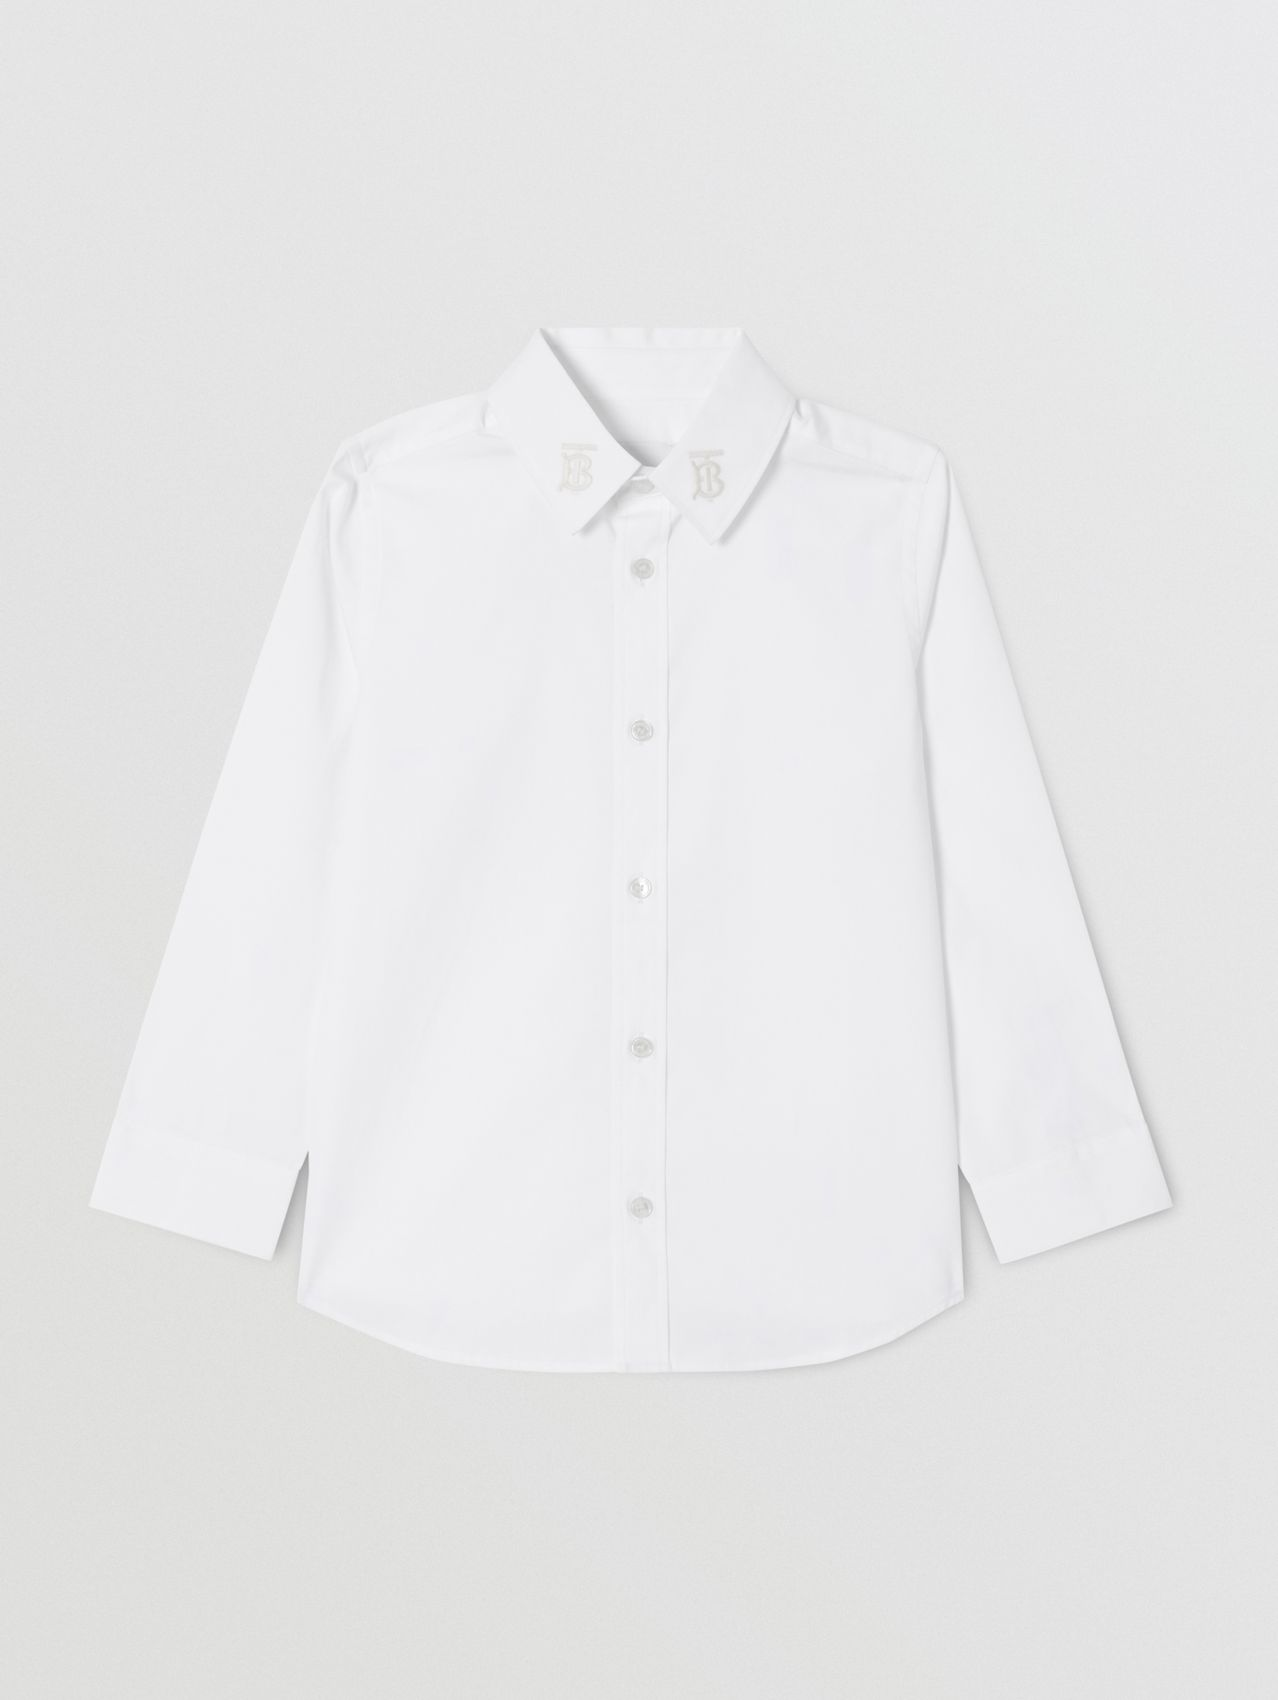 Monogram Motif Stretch Cotton Poplin Shirt